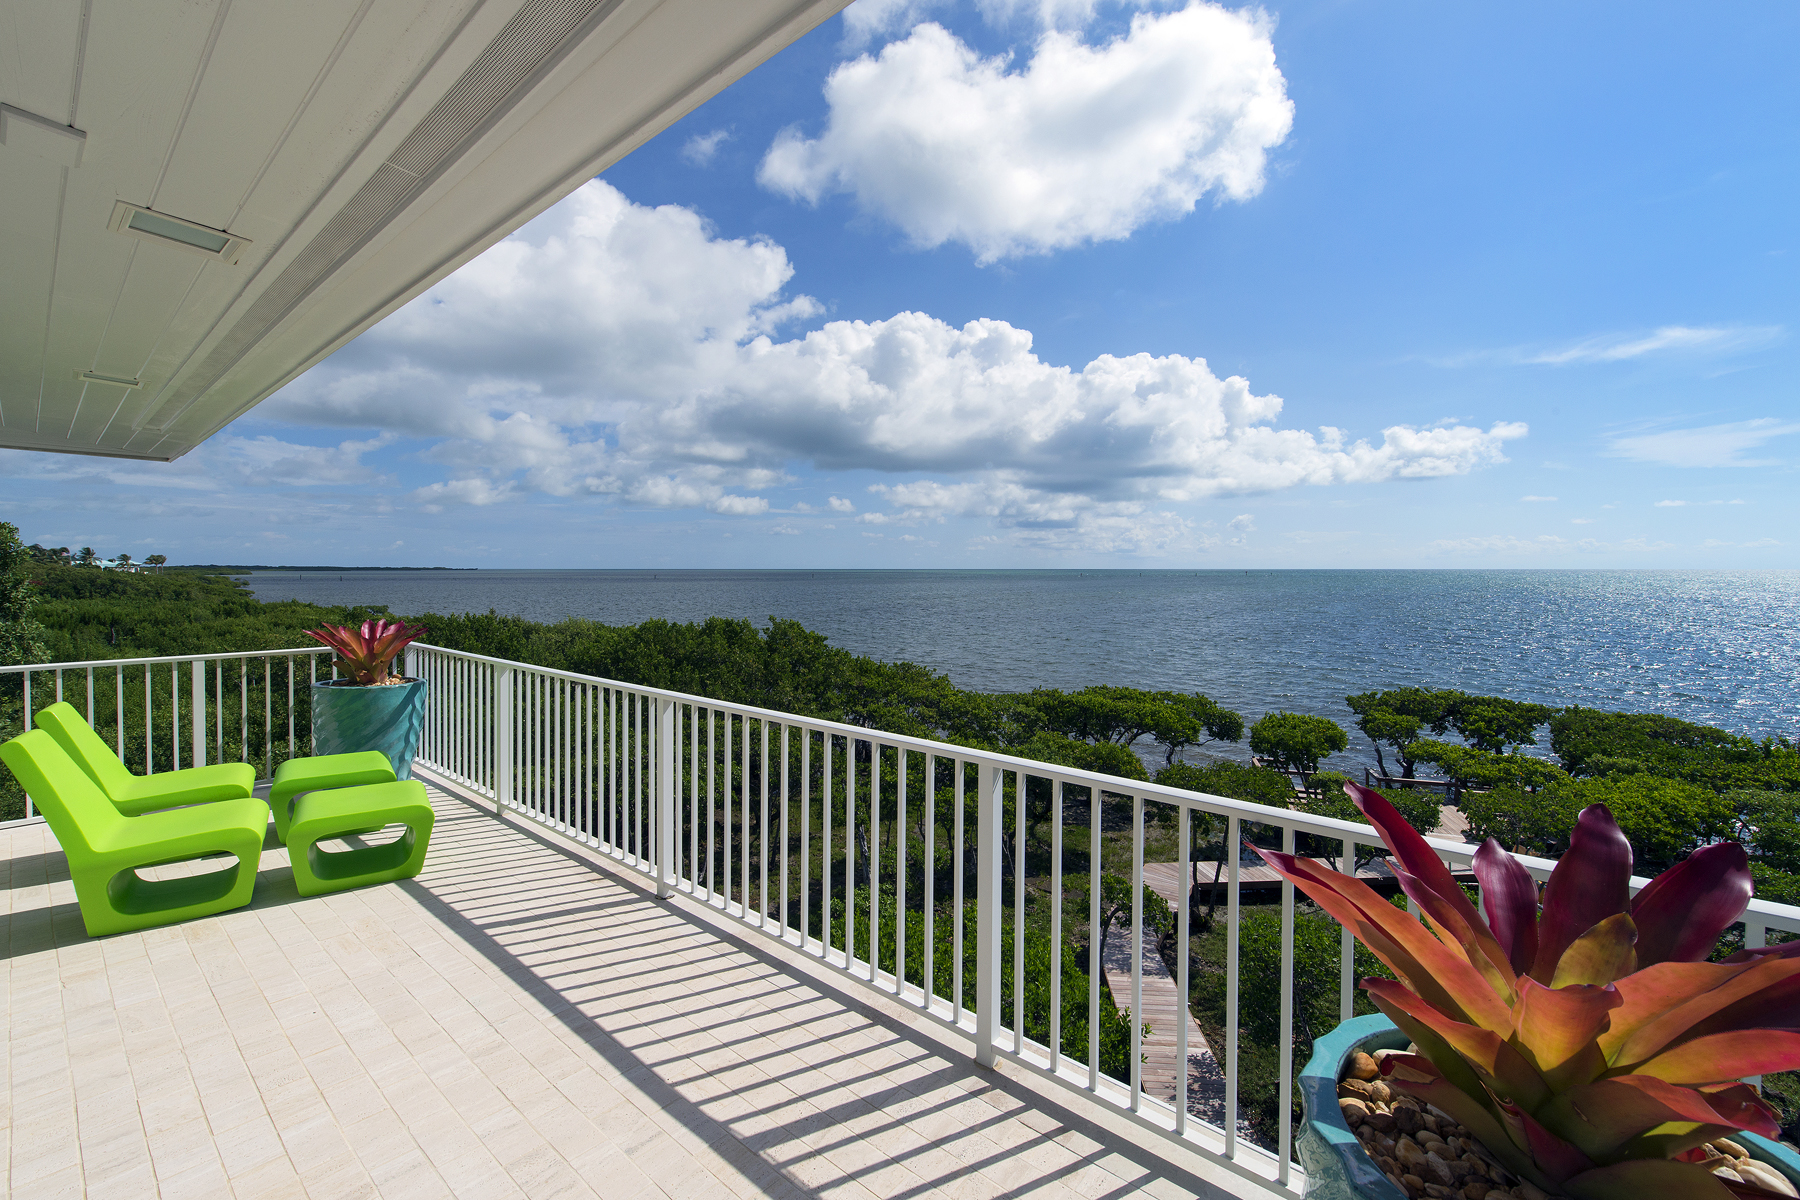 Maison unifamiliale pour l Vente à Captivating Ocean Front Views at Ocean Reef 15 Sunrise Cay Drive Ocean Reef Community, Key Largo, Florida, 33037 États-Unis